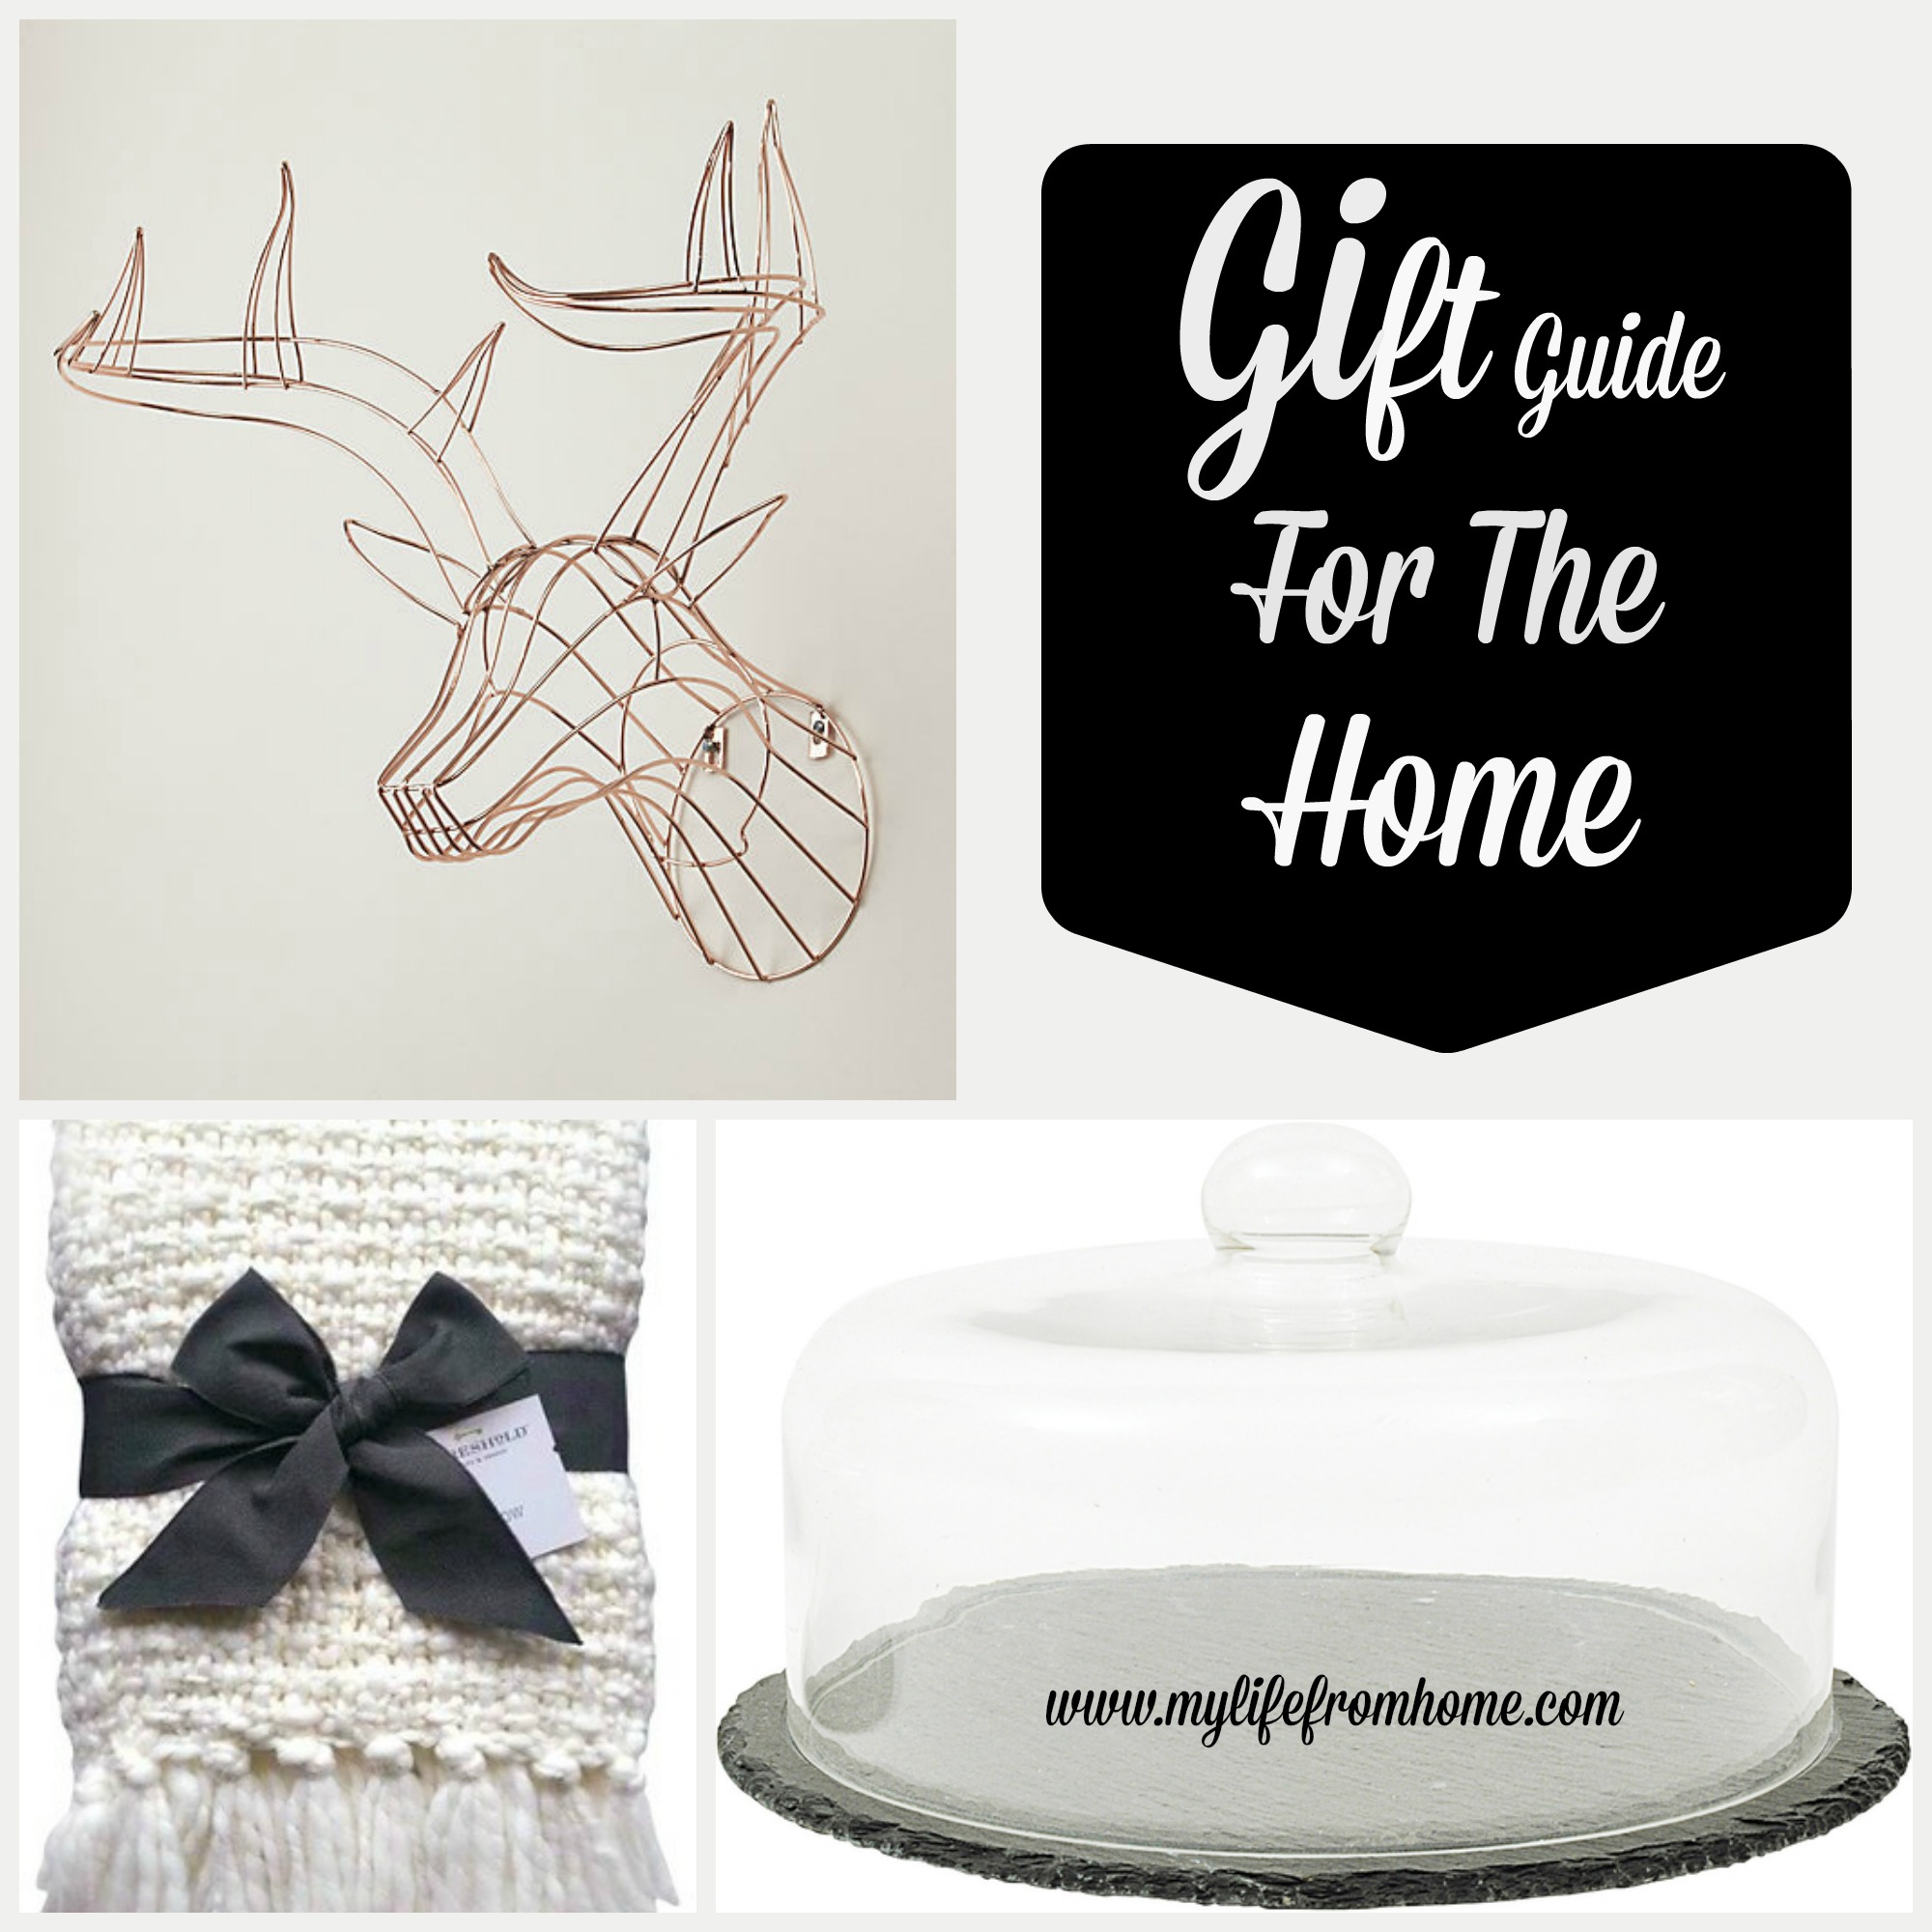 Gift Guide for the Home by www.mylifefromhome.com